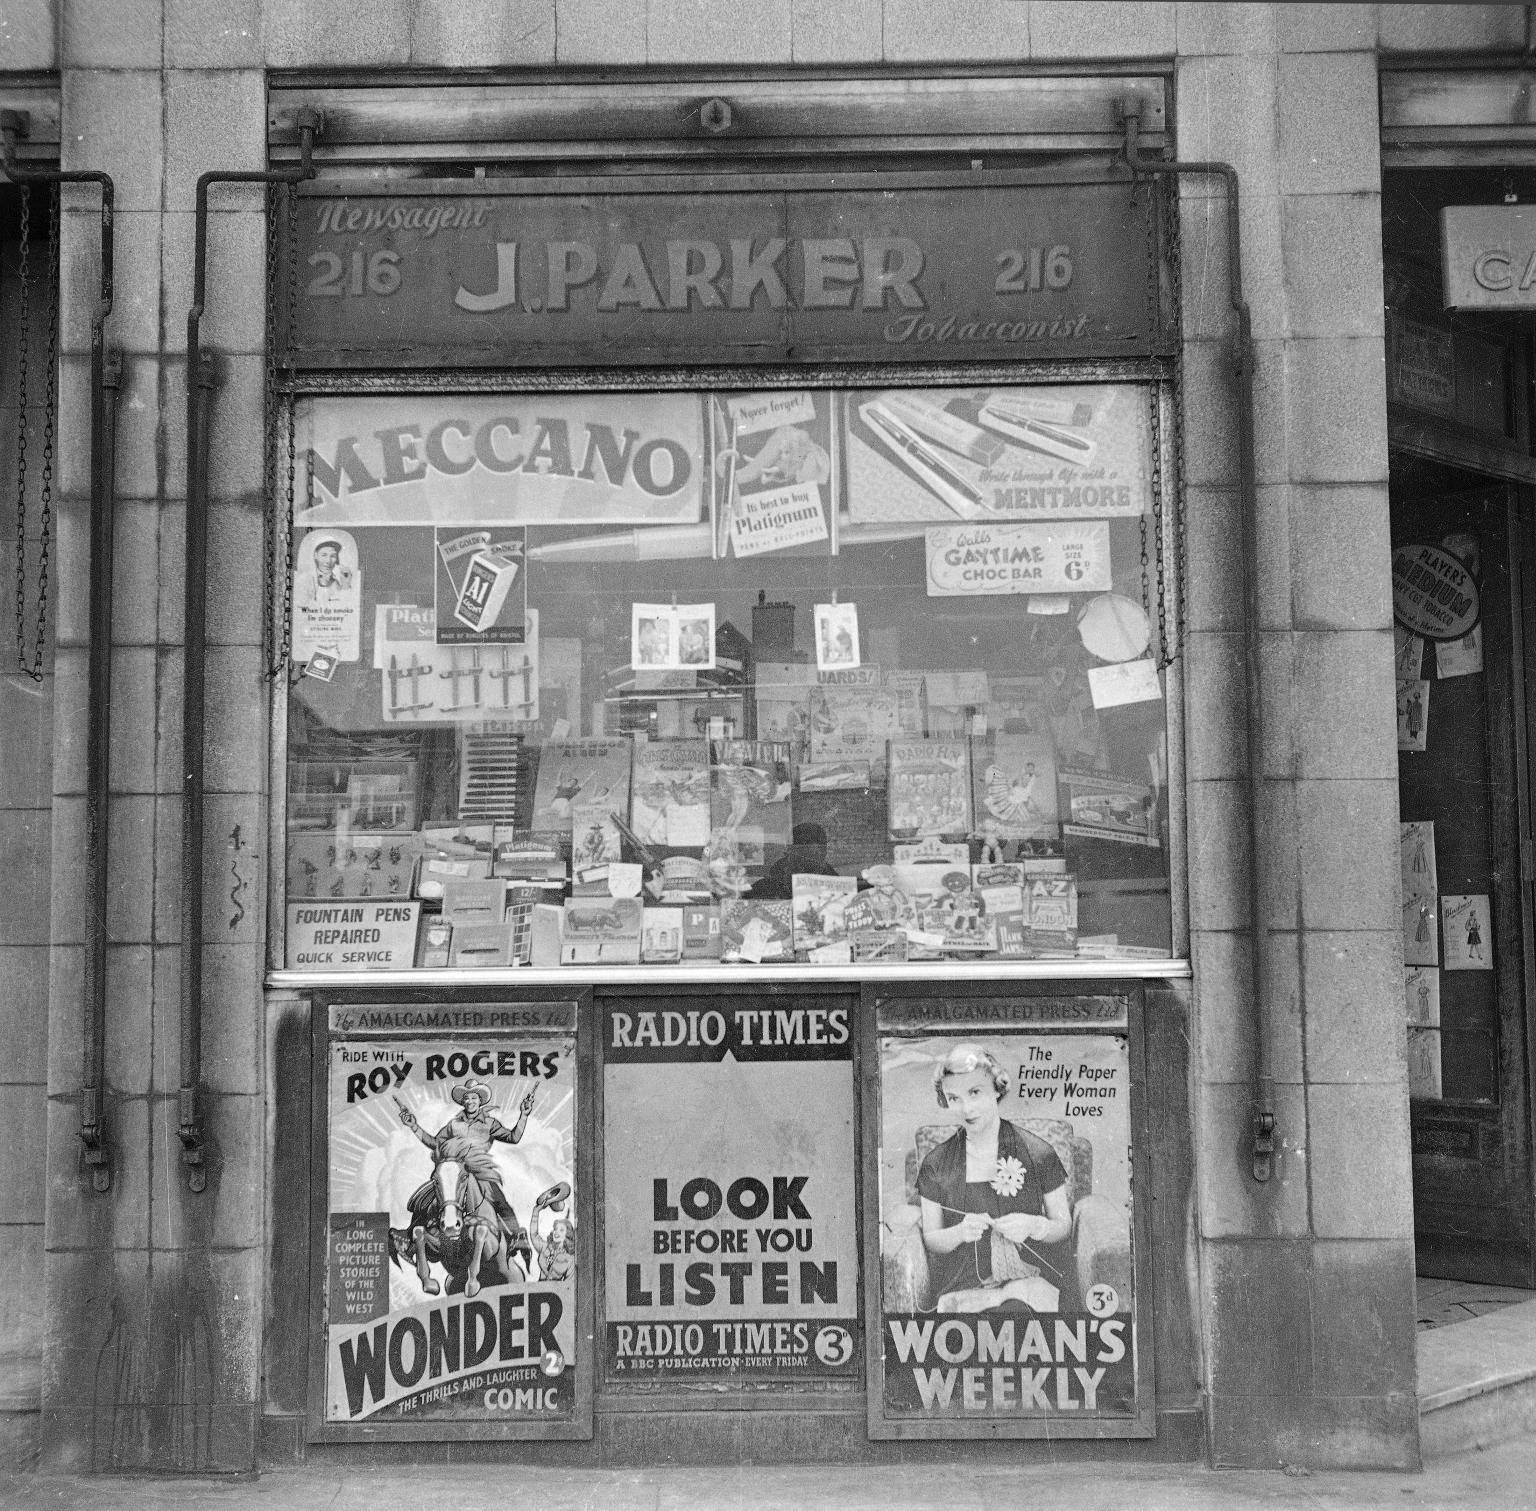 J. Parker Newsagents, 216 Bethnal Green Road, London